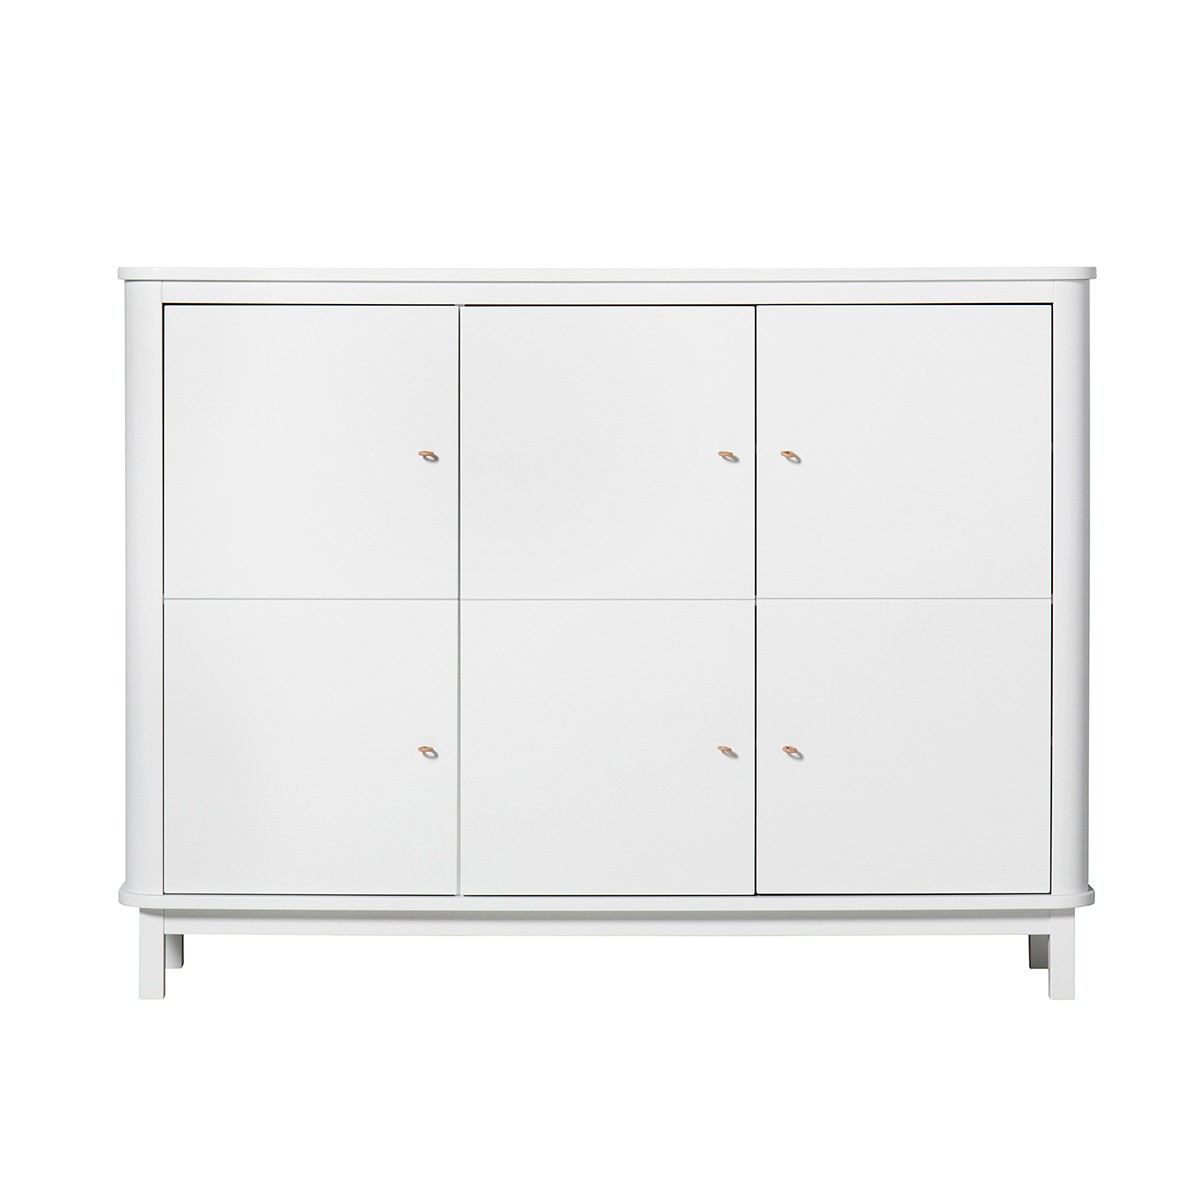 Armoire basse 3 portes multi-usage Wood - Blanc Blanc Oliver Furniture